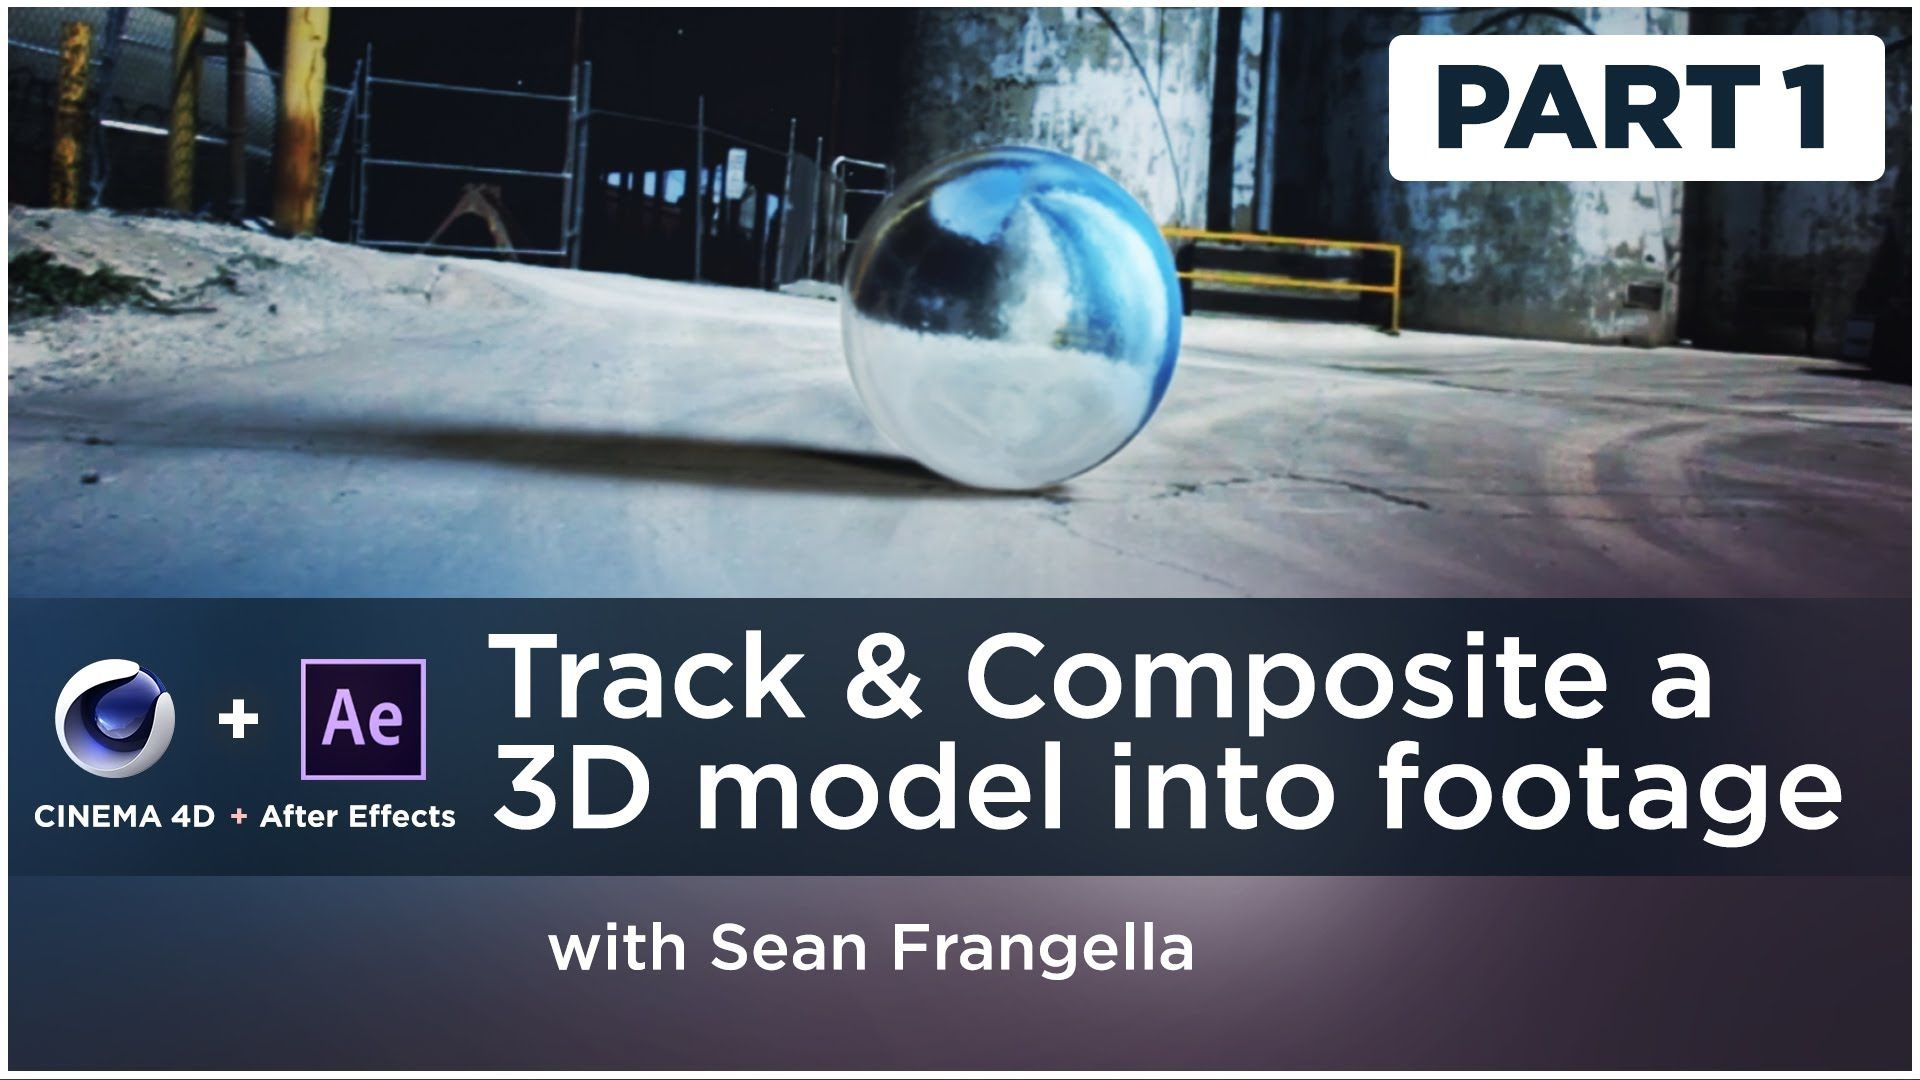 How to track composite a 3d model into live action footage using part 2 of a 2 part series on compositing workflow techniques and tips learn how to motion track a moving camera shot send tracking information to cinema baditri Choice Image